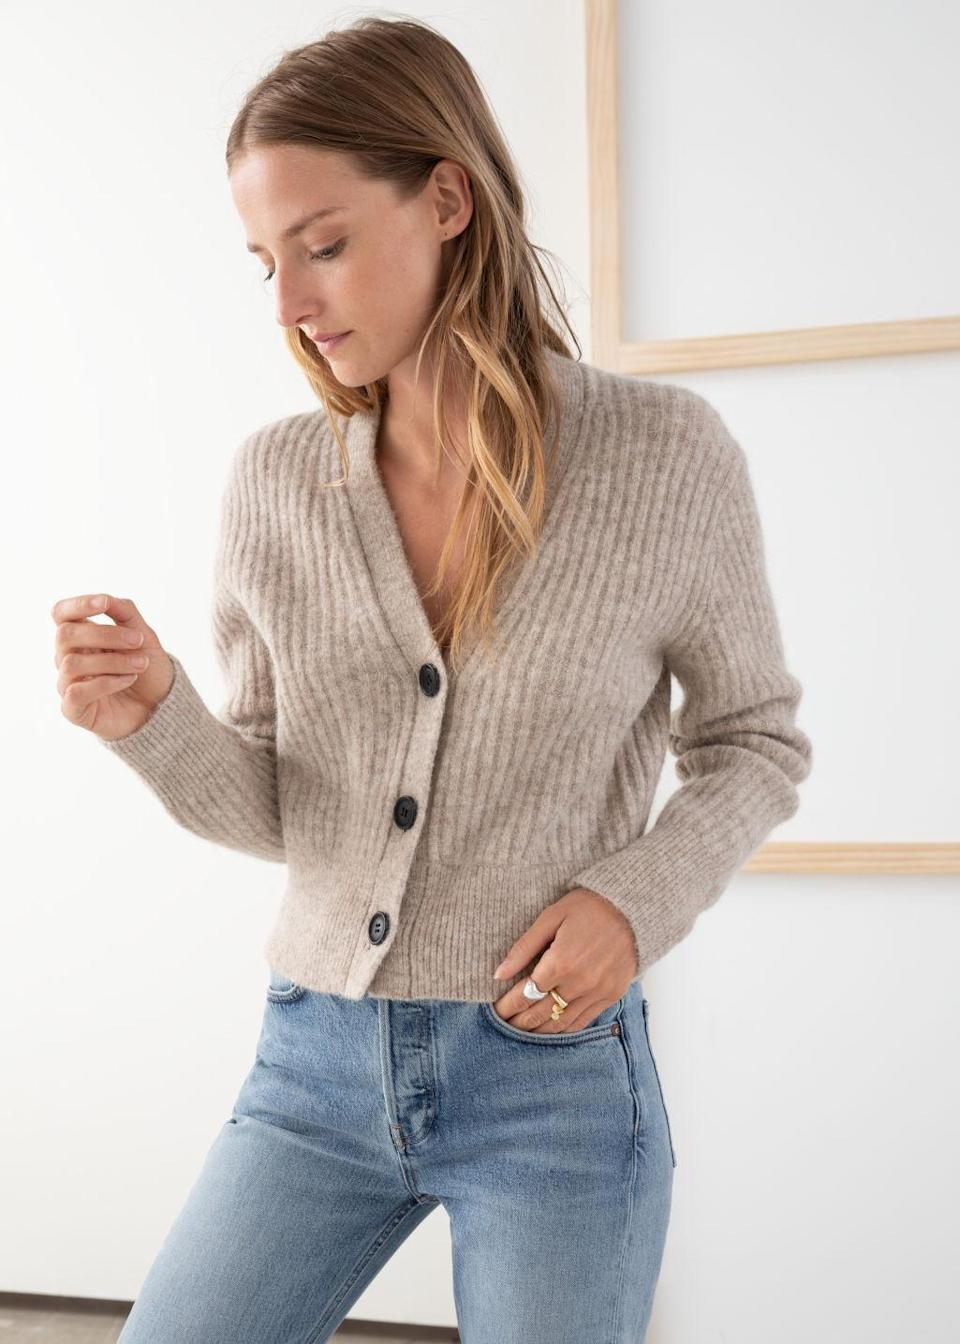 """""""The perfect cardigan is a closet game-changer,"""" says Davignon of the classic wardrobe staple. """"Novelty vintage-esque buttons are sweet and nostalgic details and tactile fabrications are ideal for colder weather."""" (Photo: & Other Stories) <a href=""""https://fave.co/2pvJ3Ez"""" rel=""""nofollow noopener"""" target=""""_blank"""" data-ylk=""""slk:SHOP IT:"""" class=""""link rapid-noclick-resp""""><strong>SHOP IT: </strong></a><strong>& Other Stories Wool Blend Cardigan, $119, </strong><a href=""""https://fave.co/2pvJ3Ez"""" rel=""""nofollow noopener"""" target=""""_blank"""" data-ylk=""""slk:stories.com"""" class=""""link rapid-noclick-resp""""><strong>stories.com</strong></a>"""